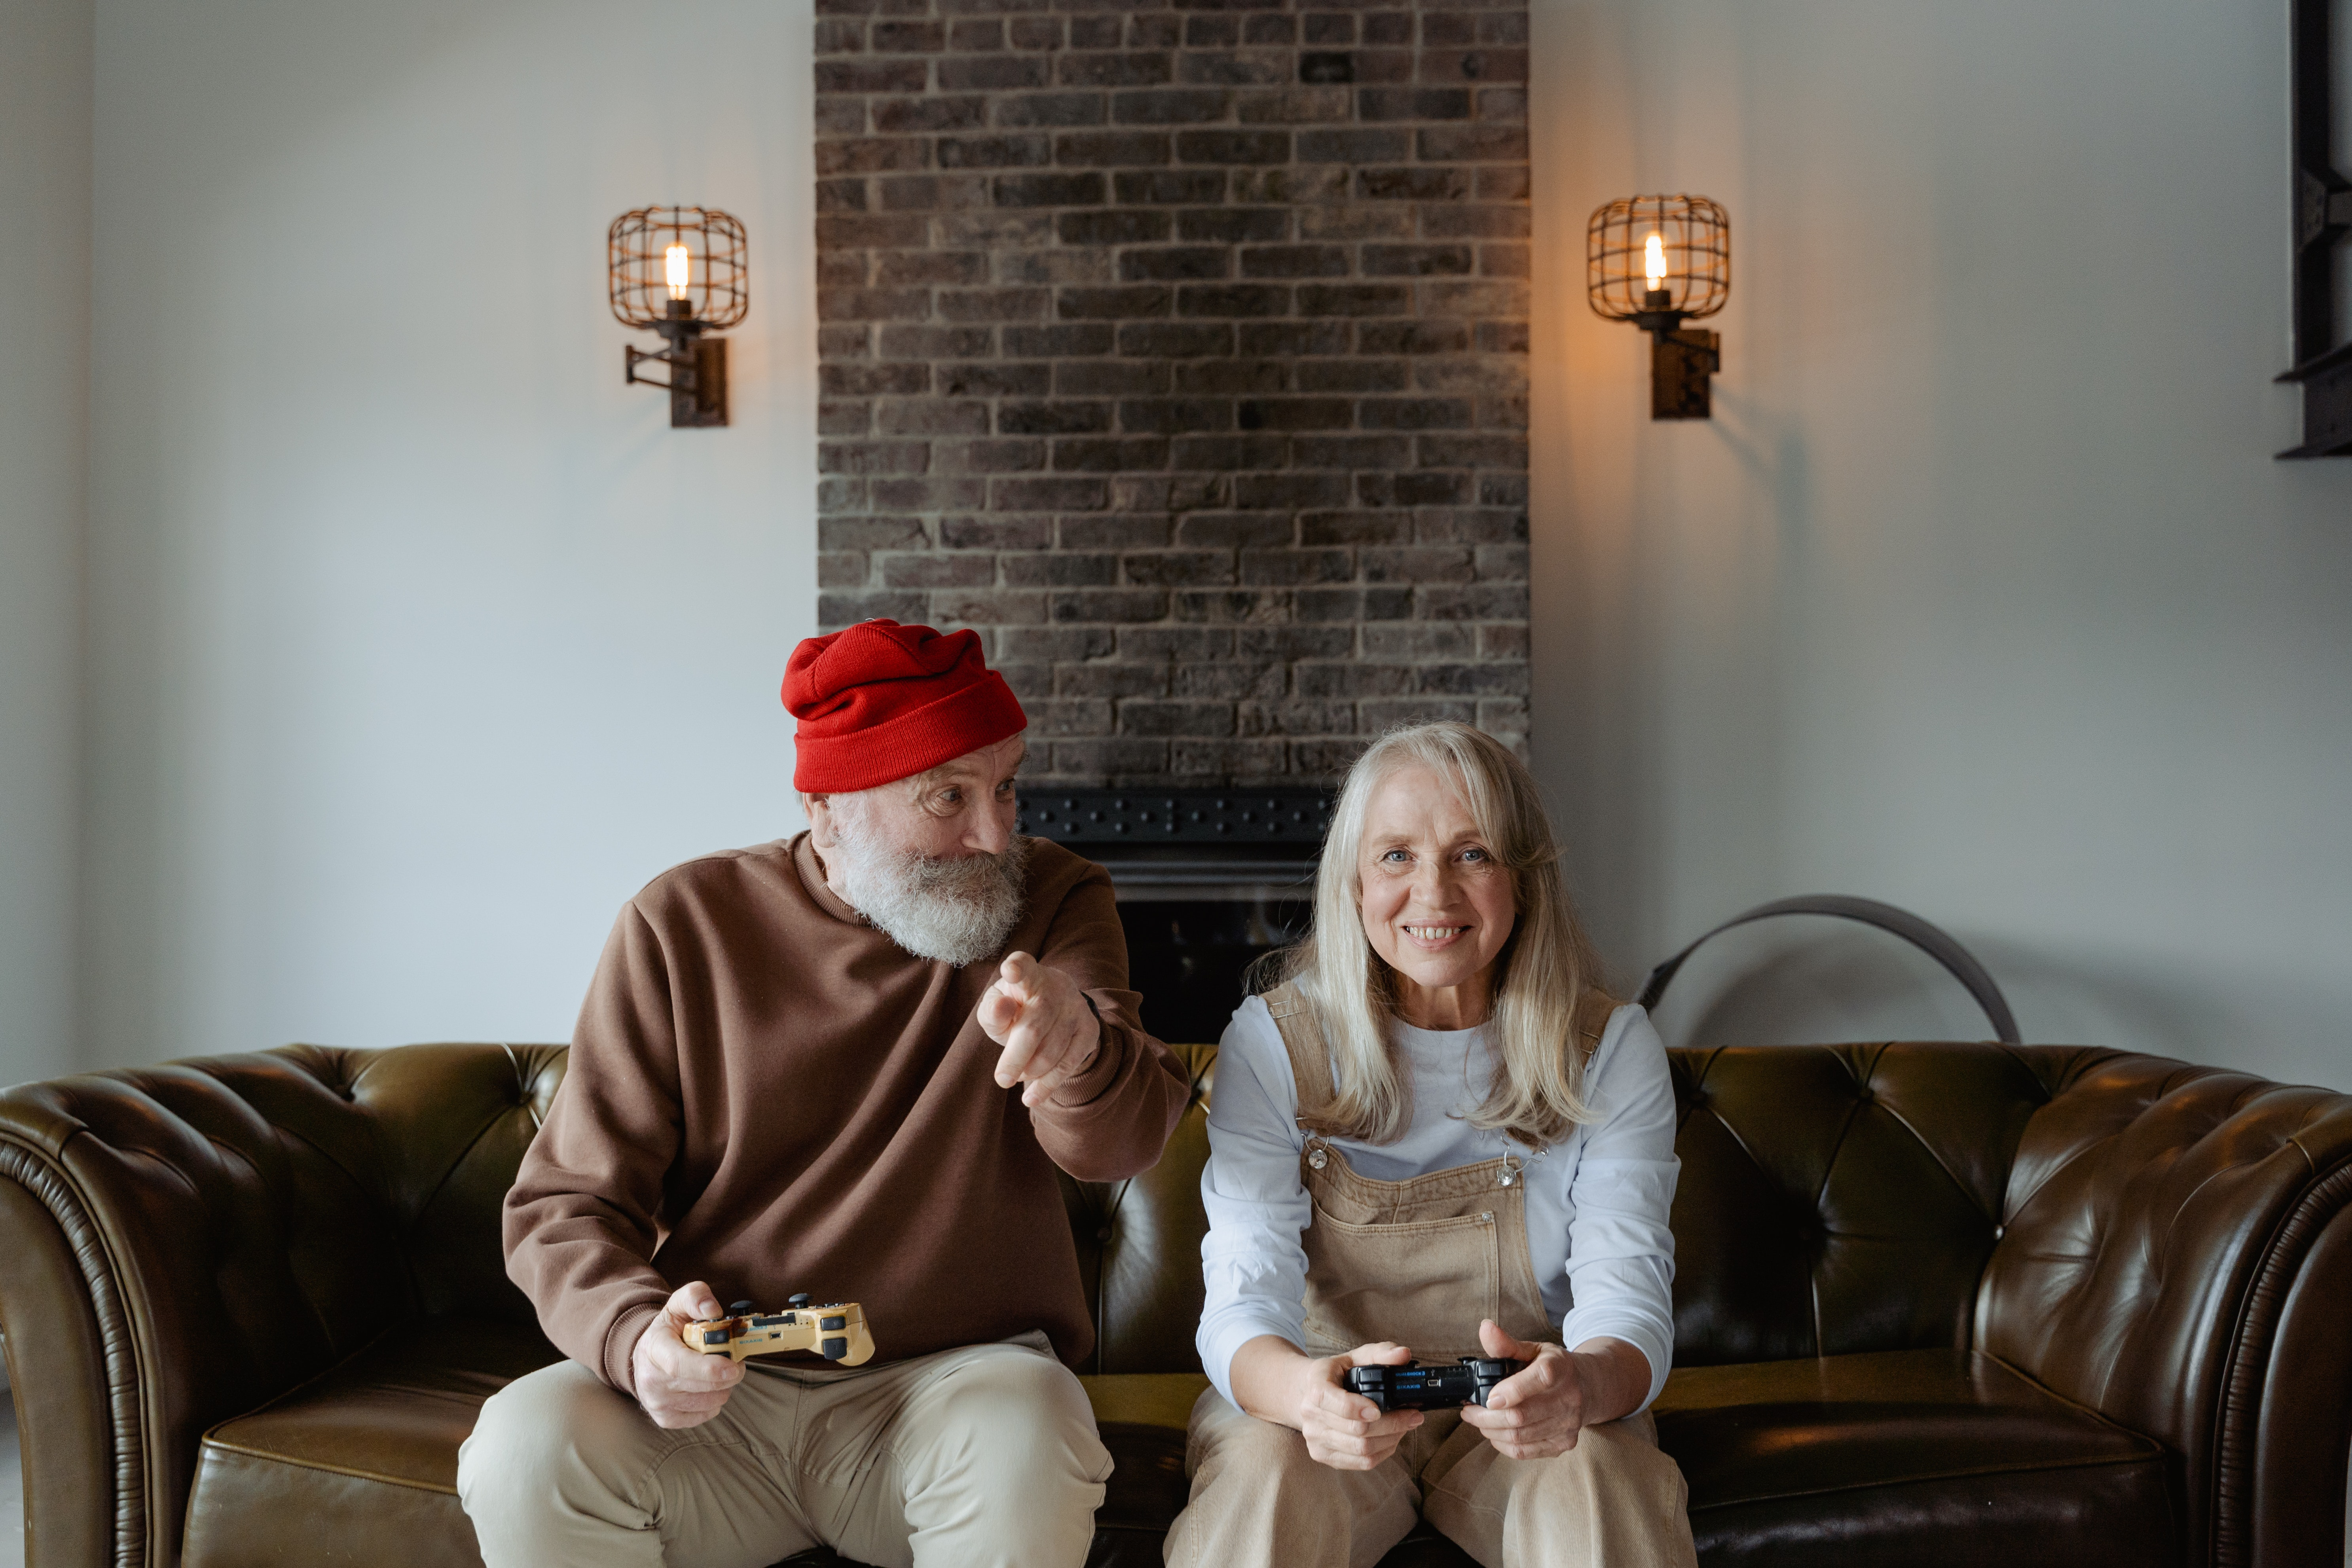 Elderly couple gaming on couch man in red beanie